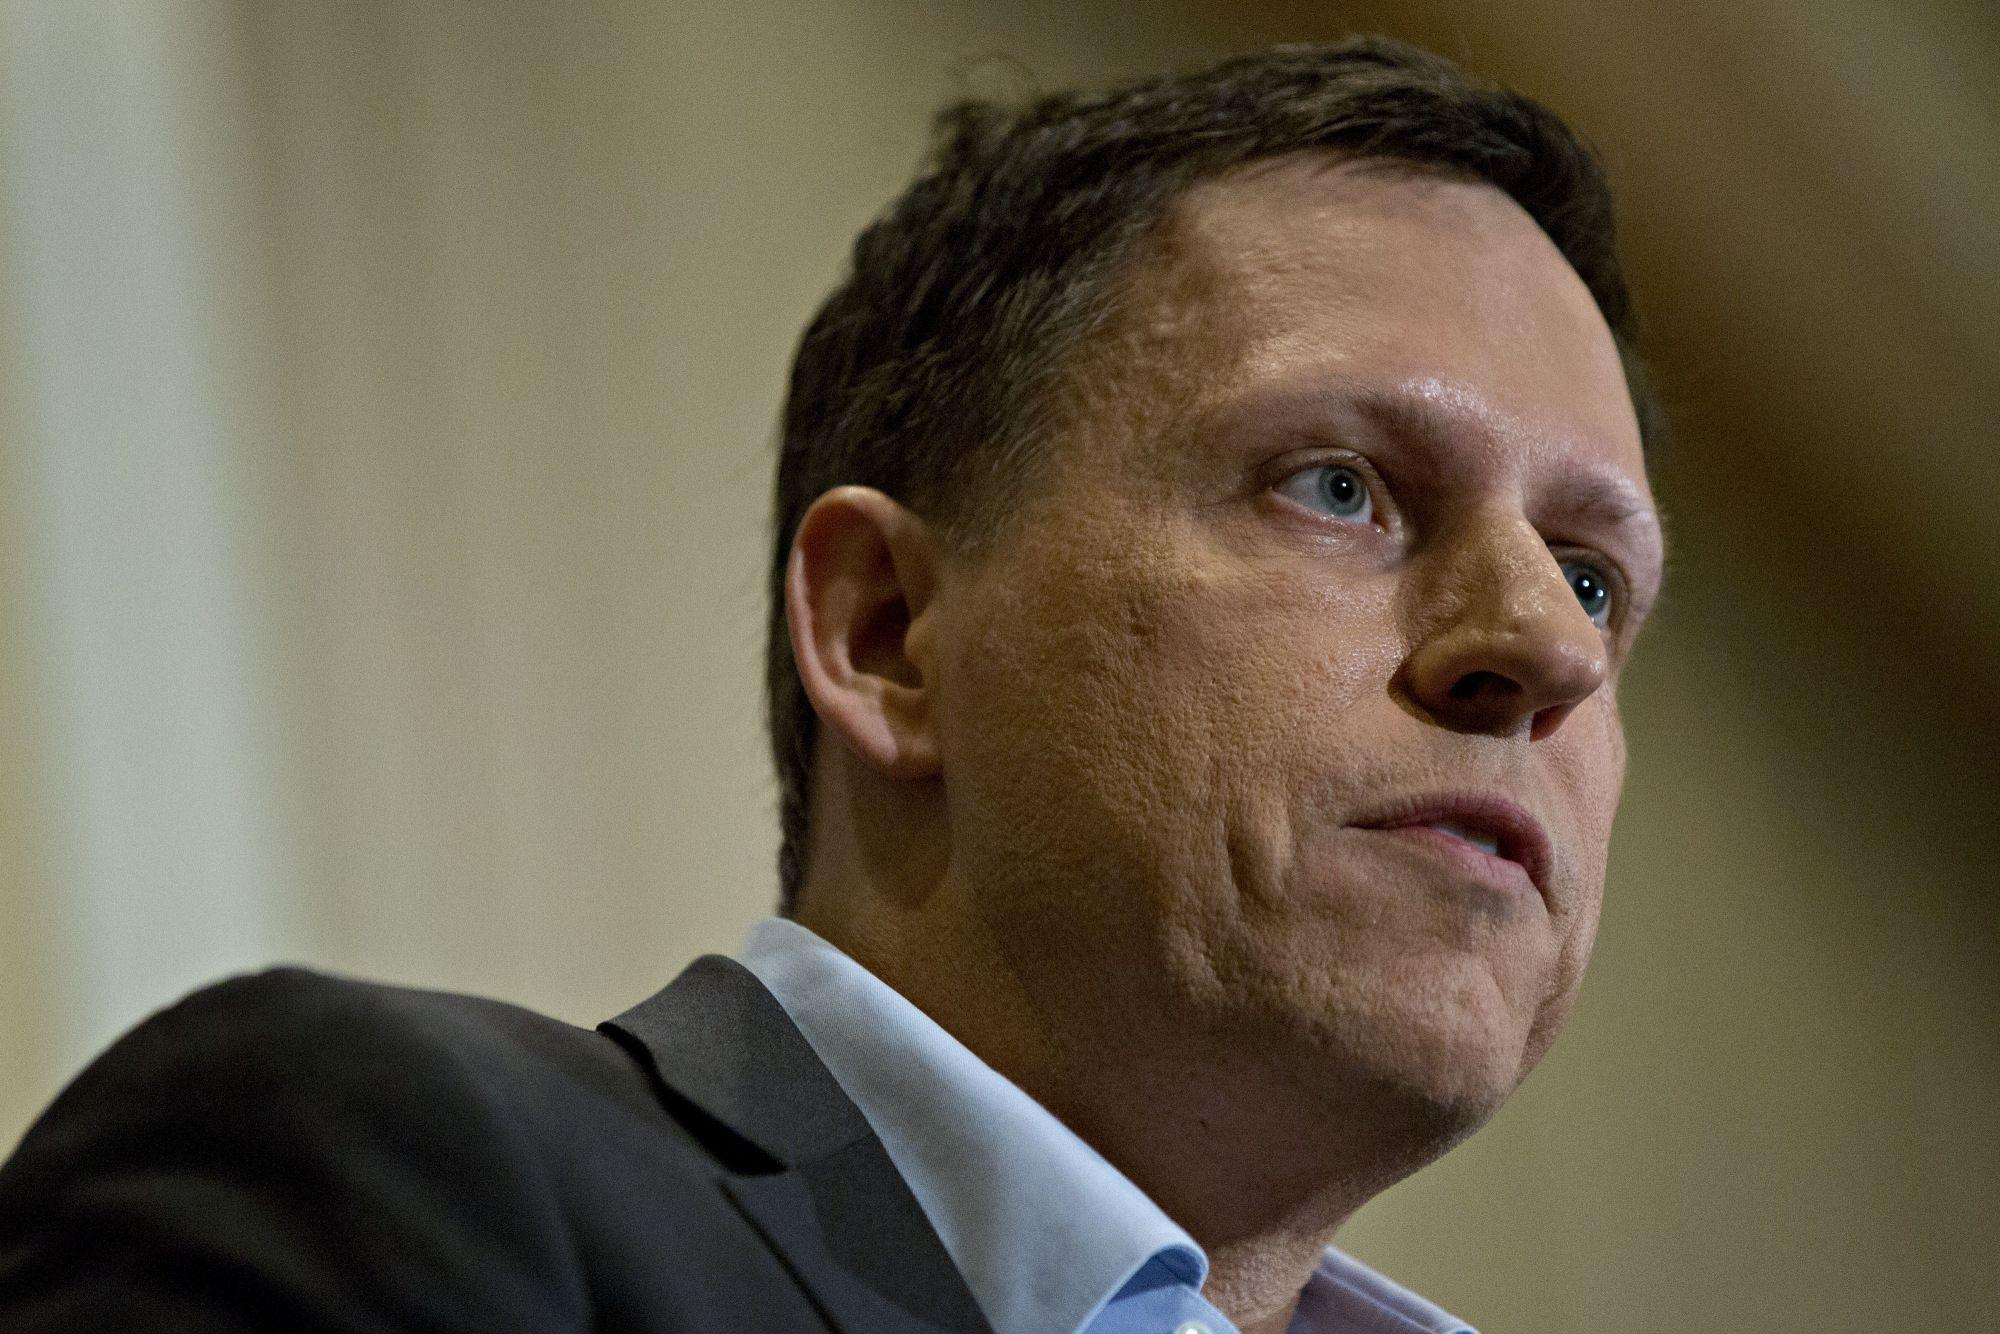 Palantir to Seek Funding on Private Market, Delay IPO